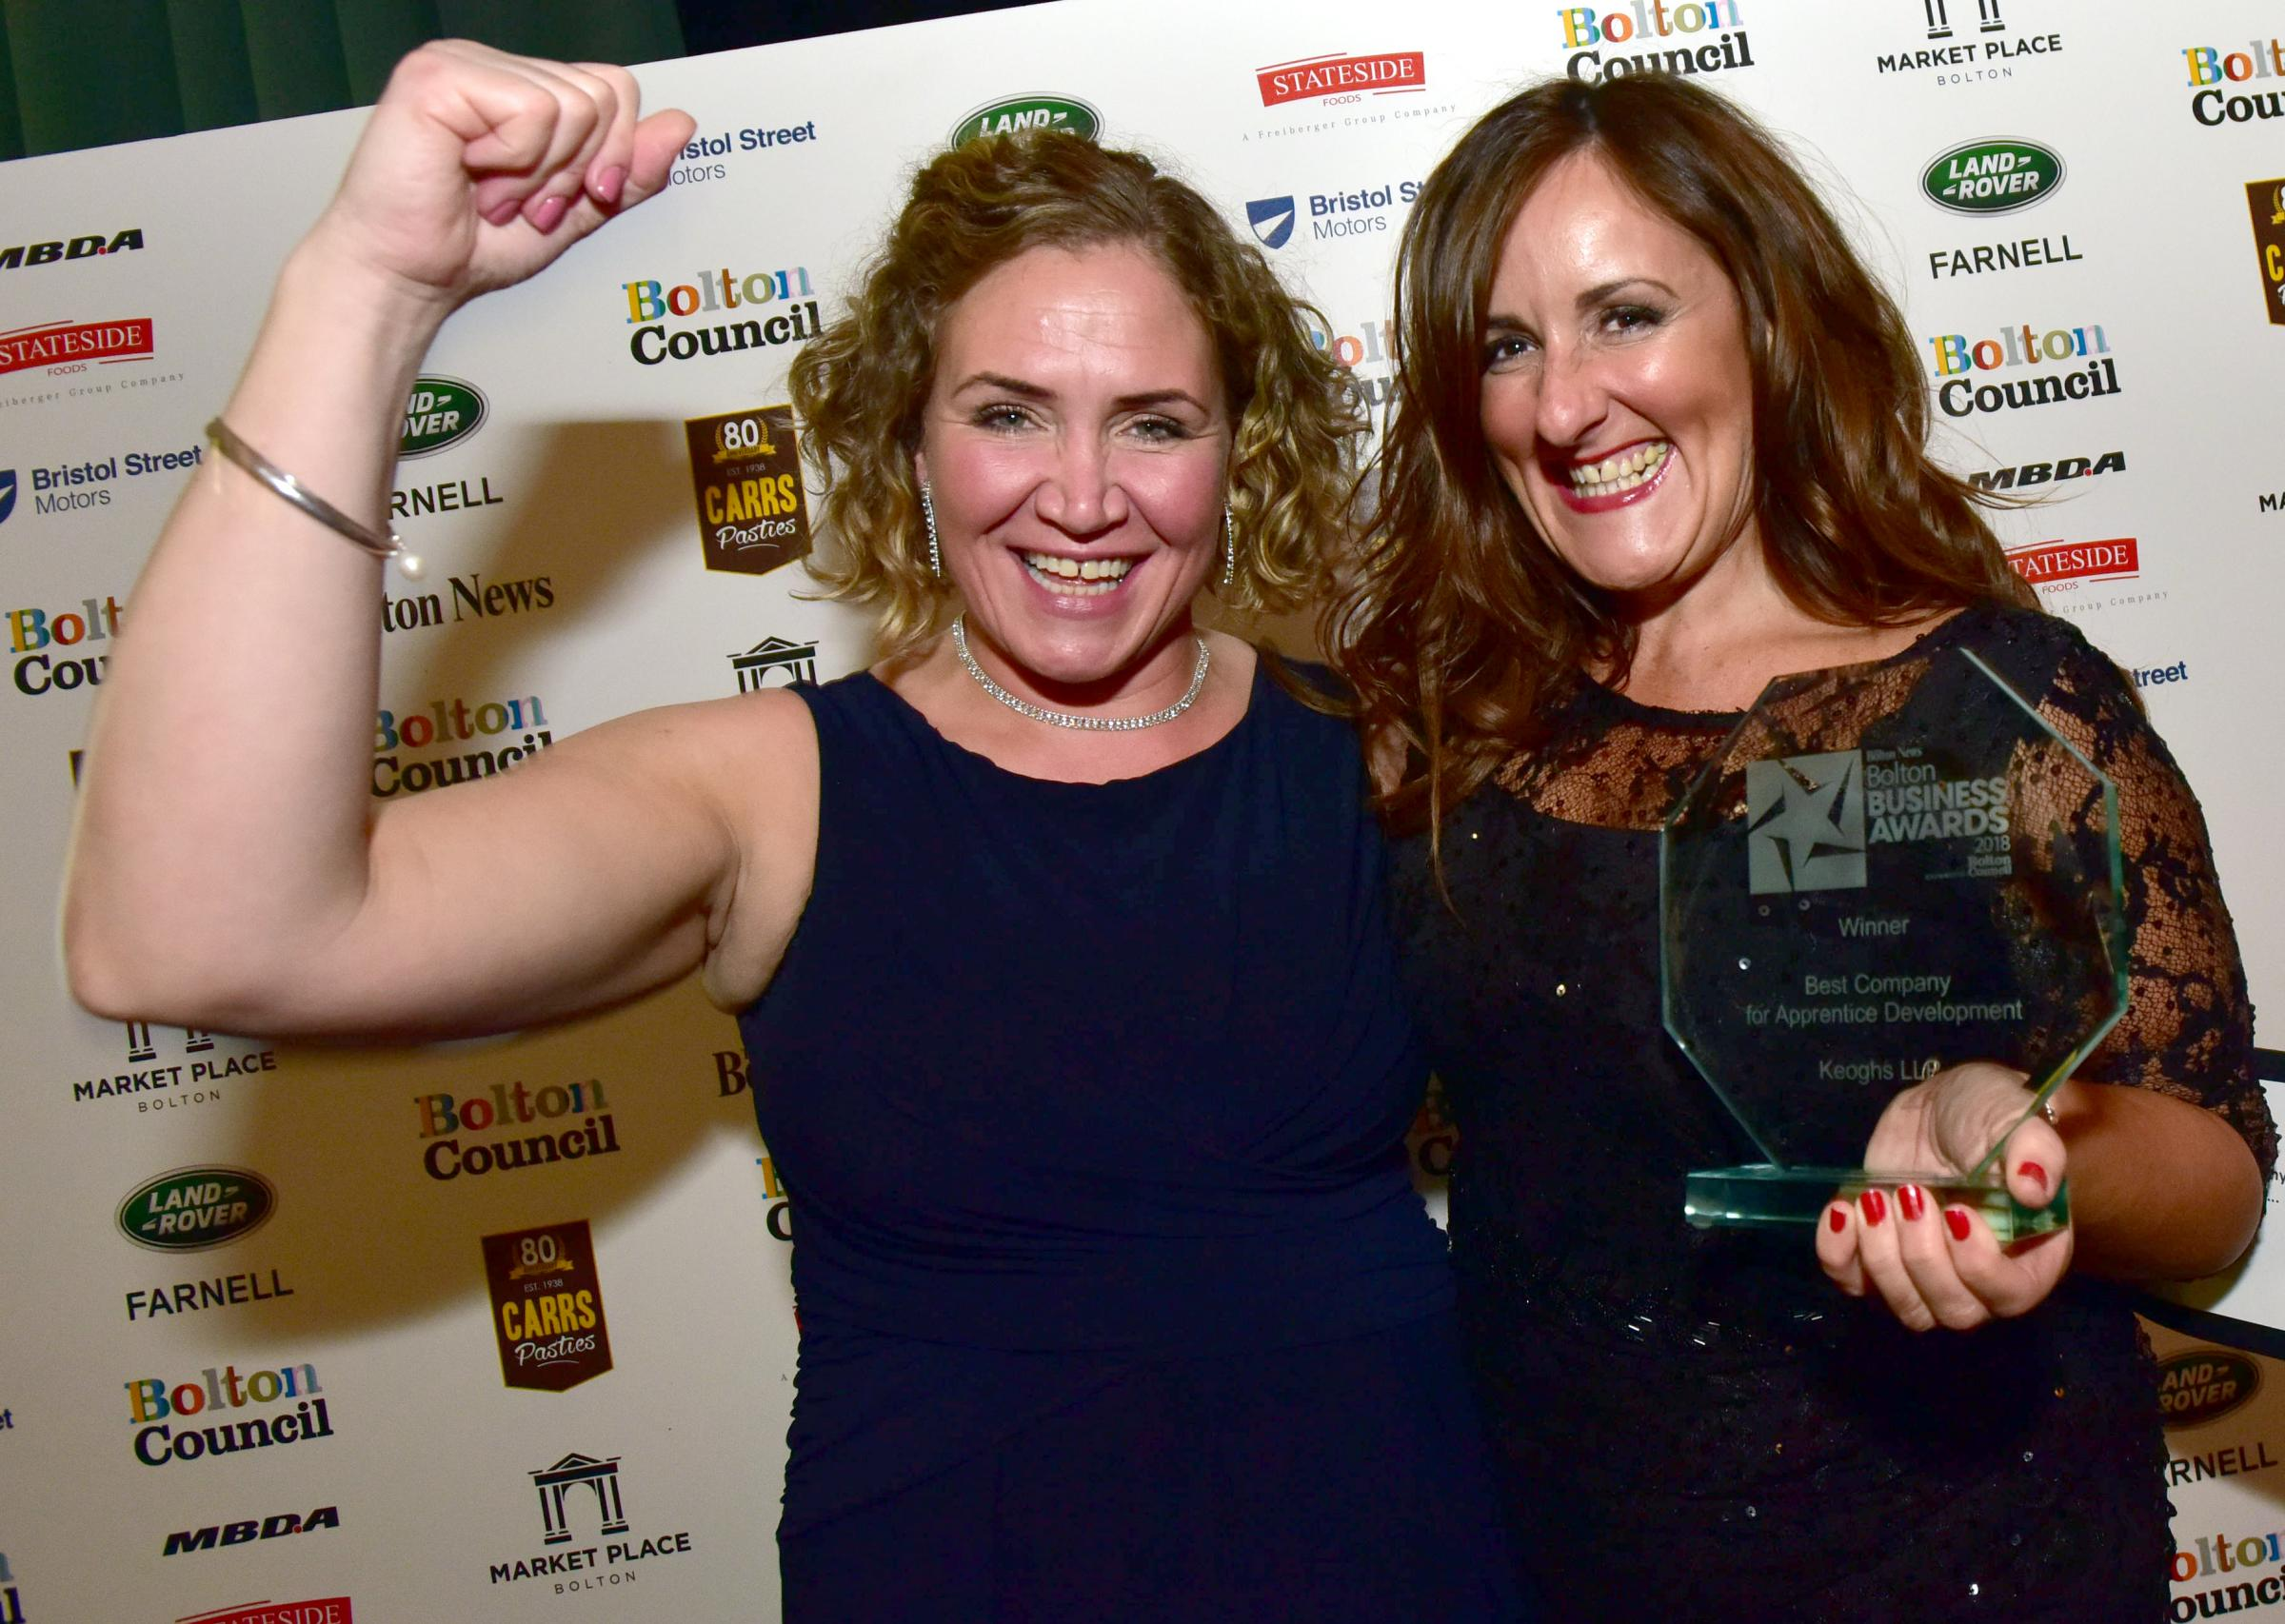 TRIUMPHANT: Rachel Mitchell-Denson and Jo Wright of Keoghs with their Best Company for Apprentice Development award at Bolton Business Awards 2018